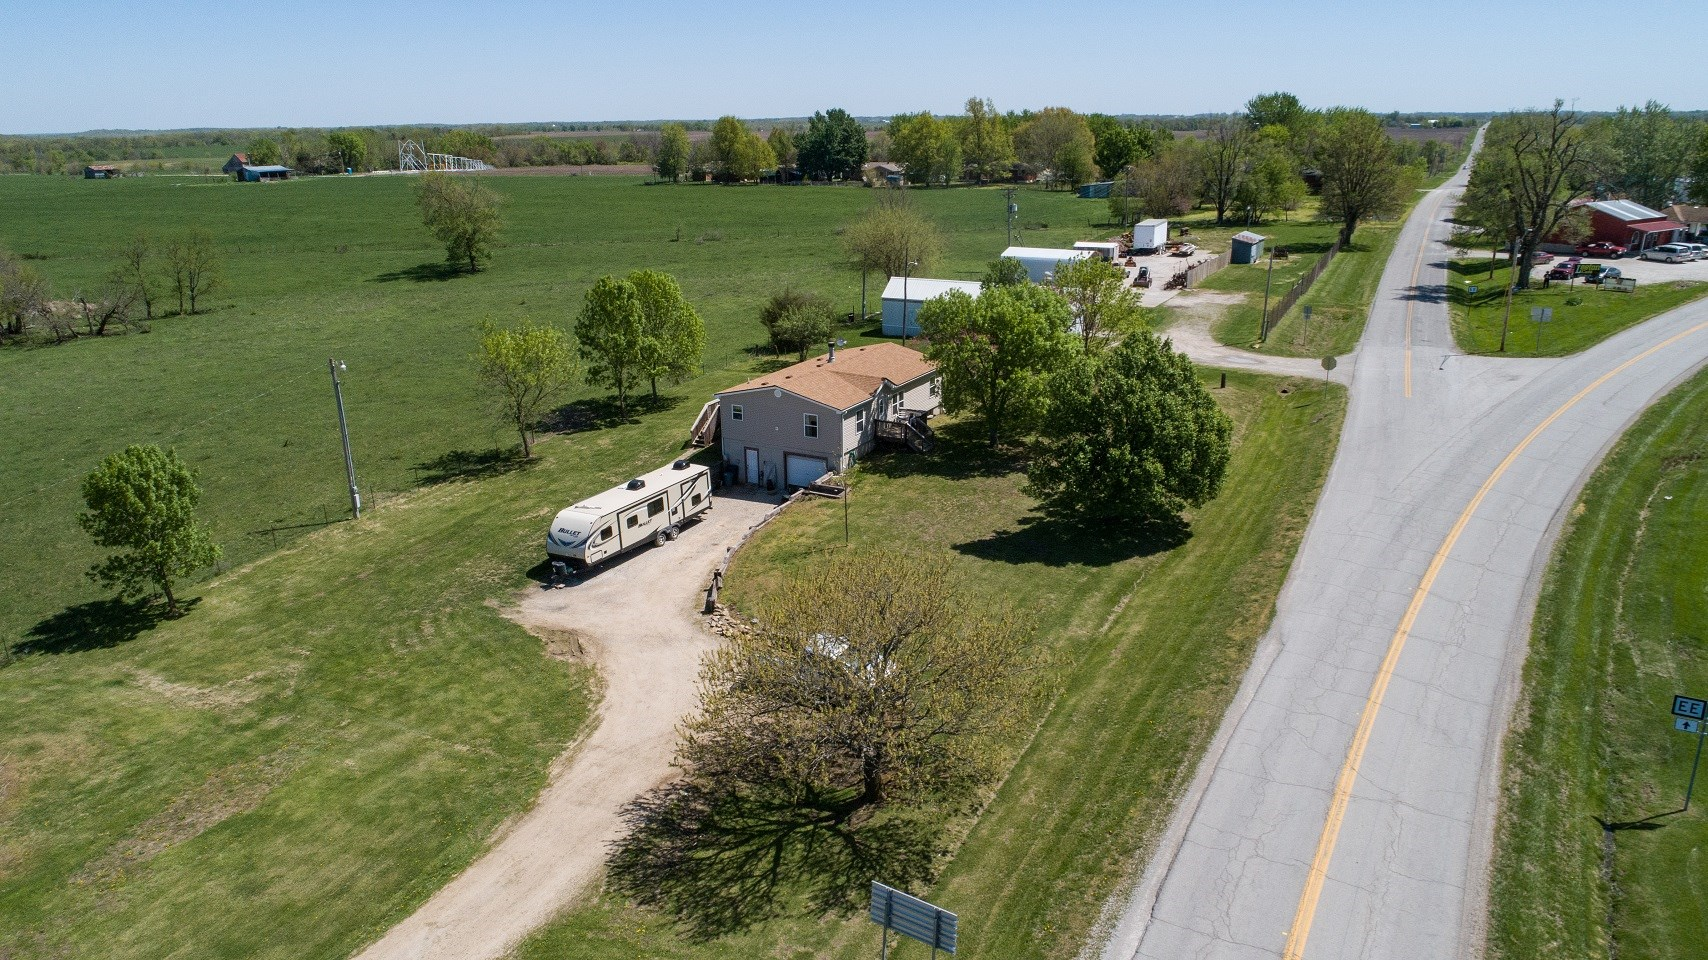 Home with Land For Sale, Leeton, Johnson County, Missouri